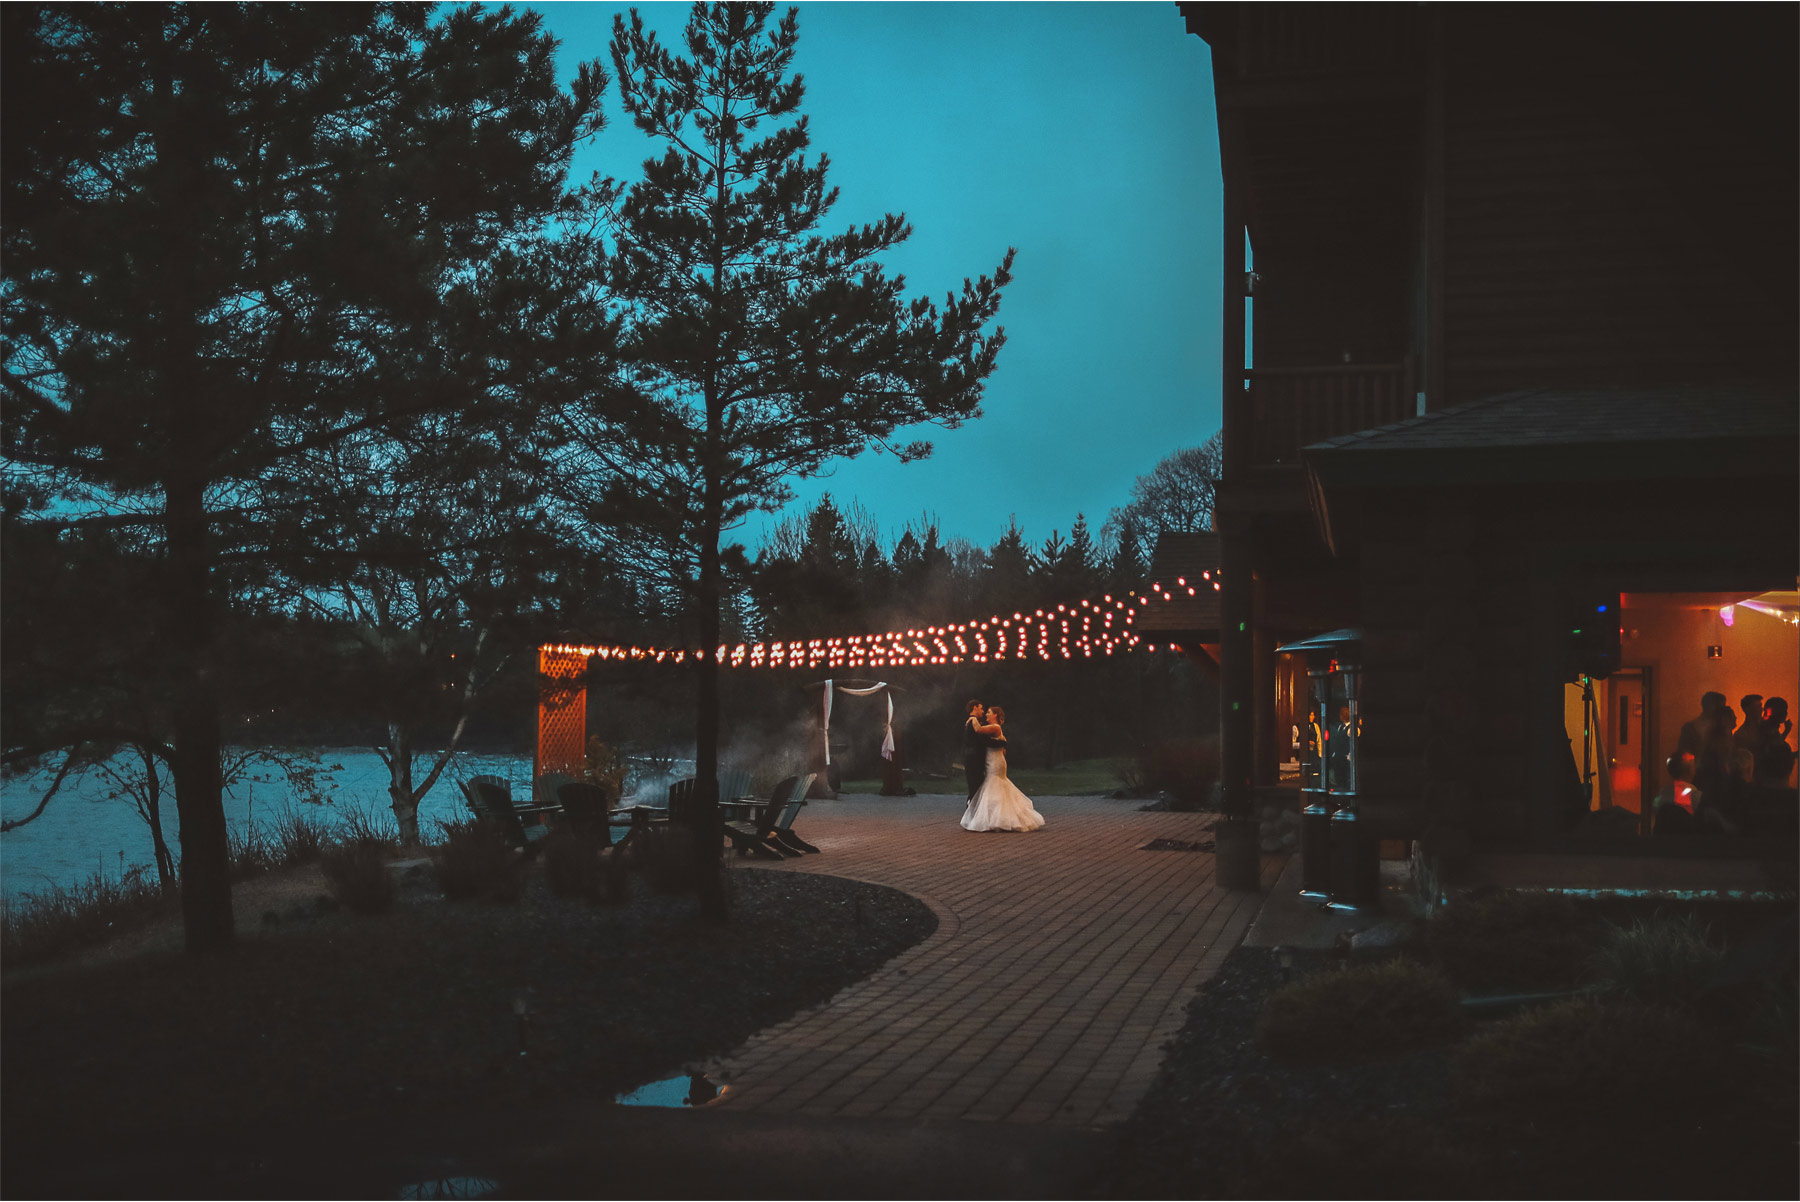 22-Minnesota-Wedding-by-Andrew-Vick-Photography-Grand-Superior-Lodge-Duluth-Two-Harbors-Lake-Superior-Rain-Bride-Groom-Dance-Outdoor-Reception-Veronica-and-Tyler.jpg